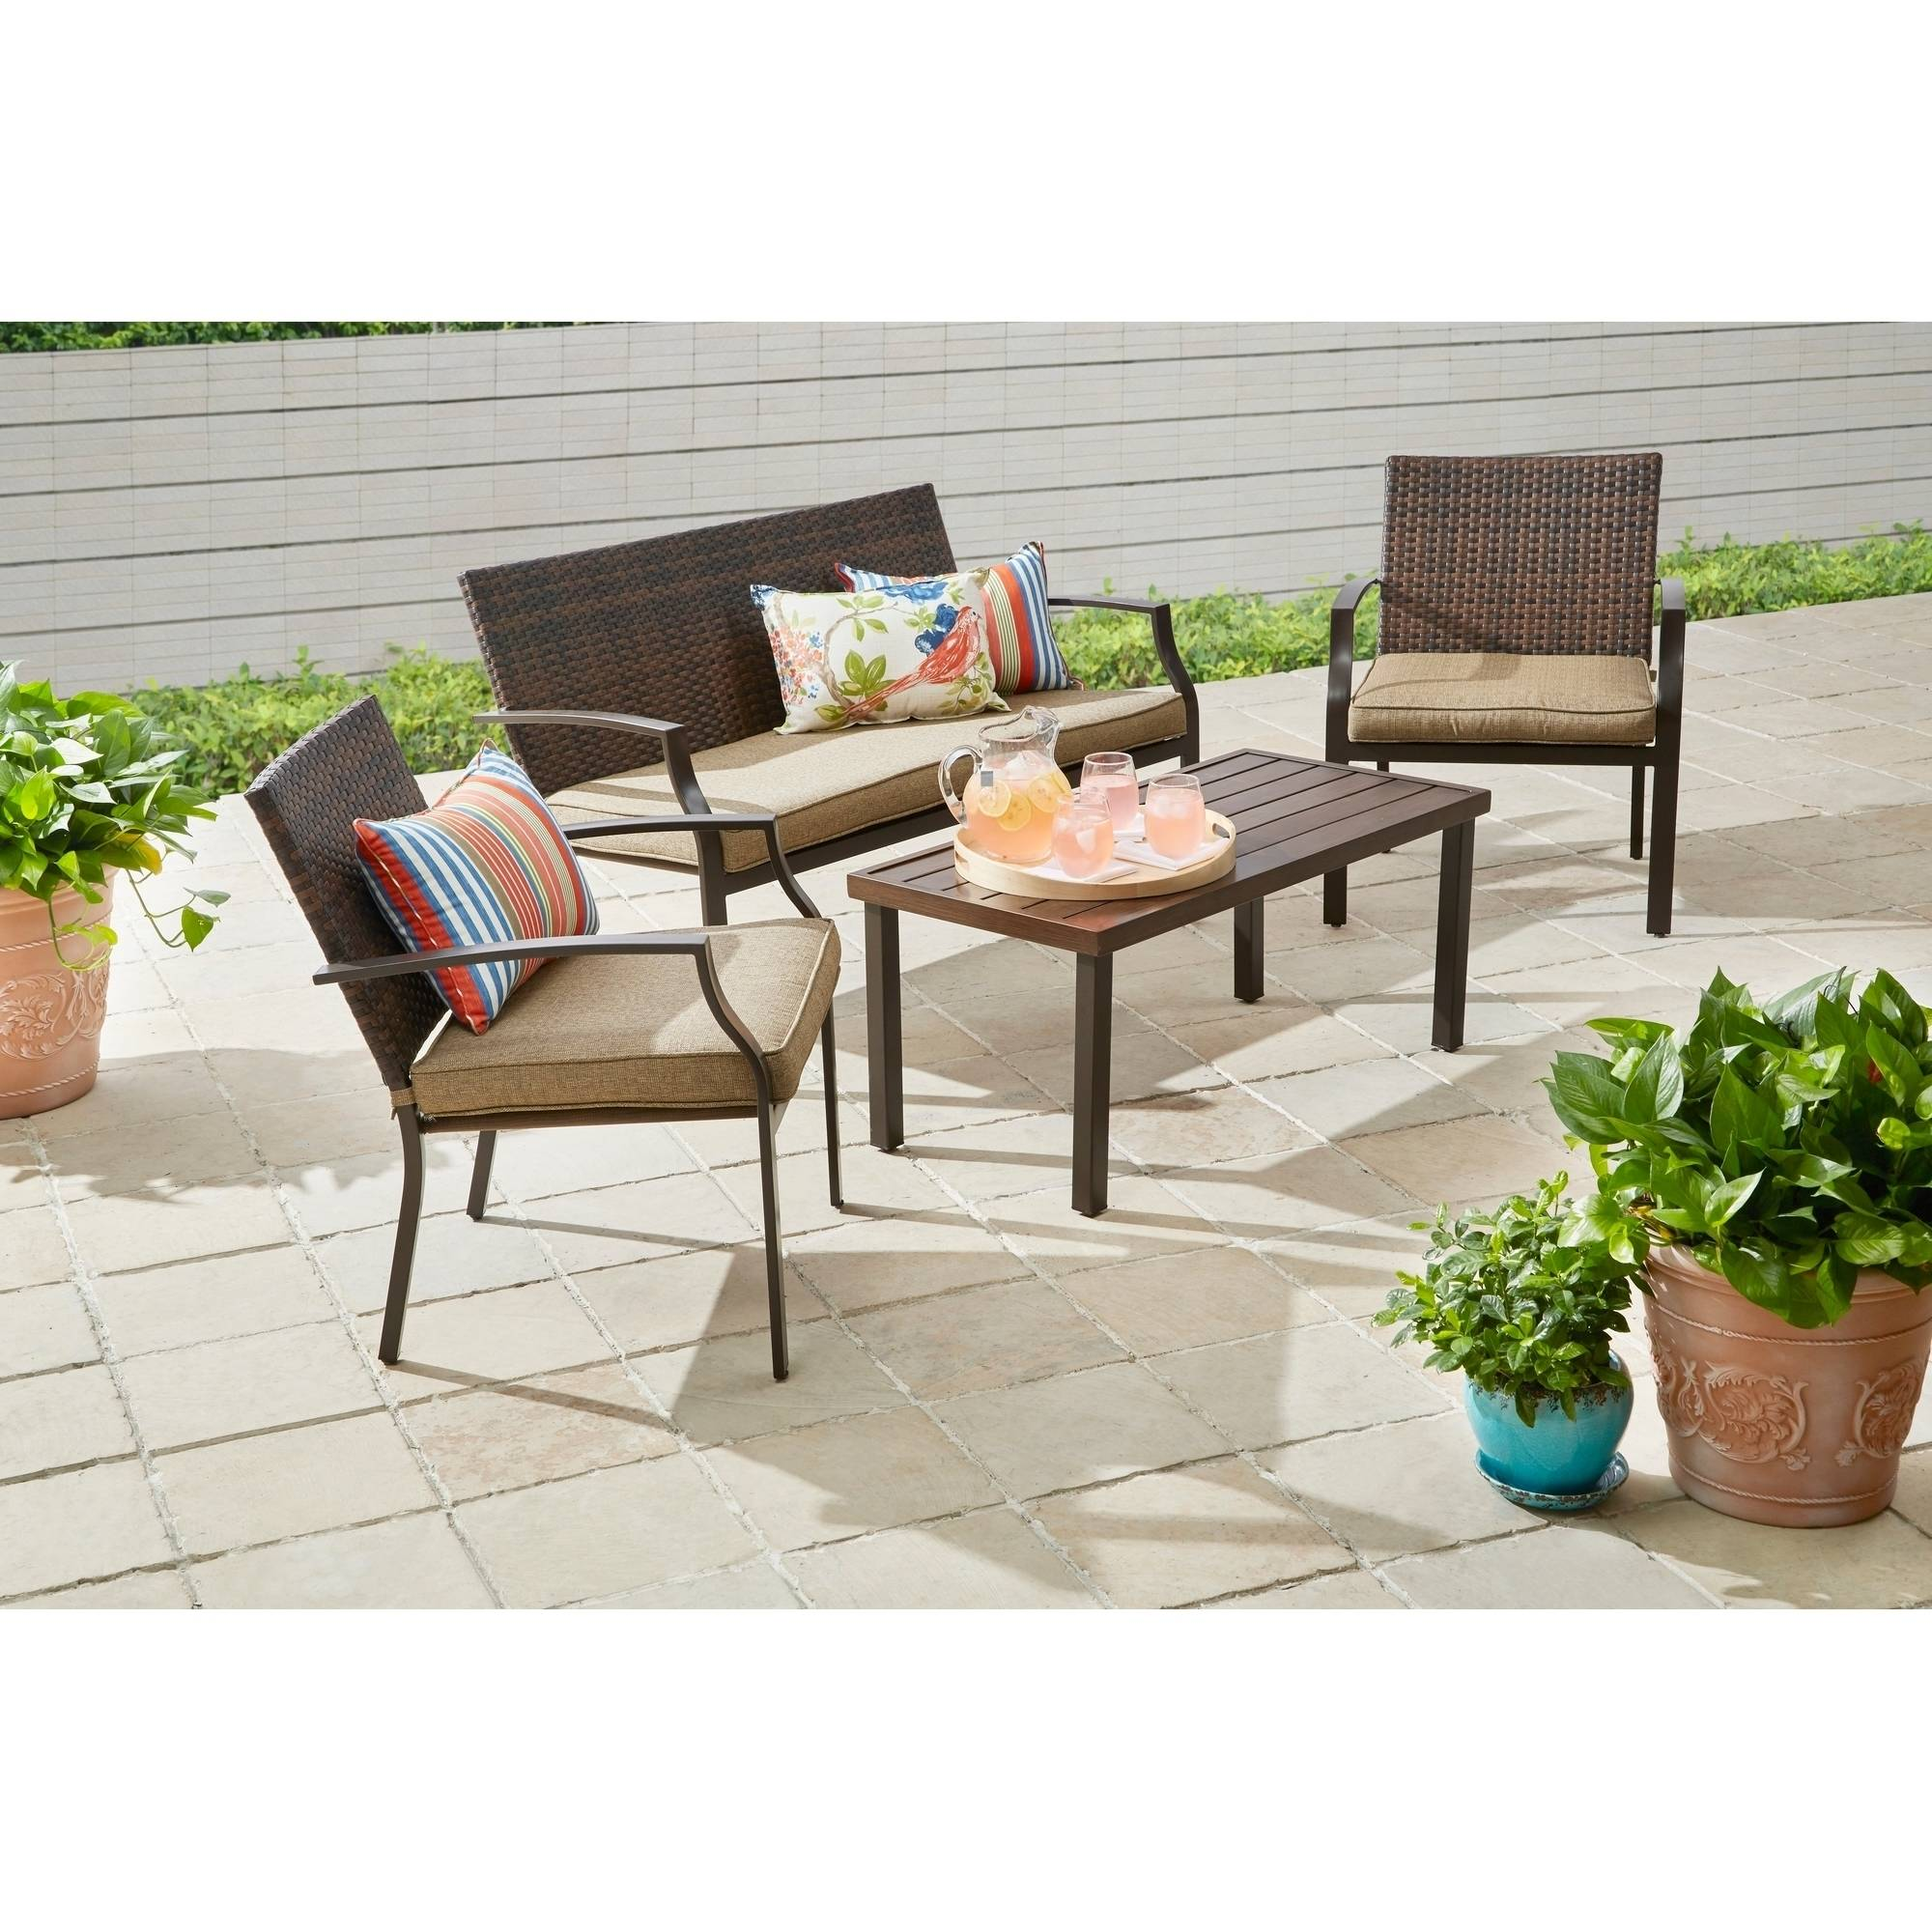 Click here to buy Better Homes and Gardens Boxford 4-Piece Wicker Stacking Conversation Set with Fabric....